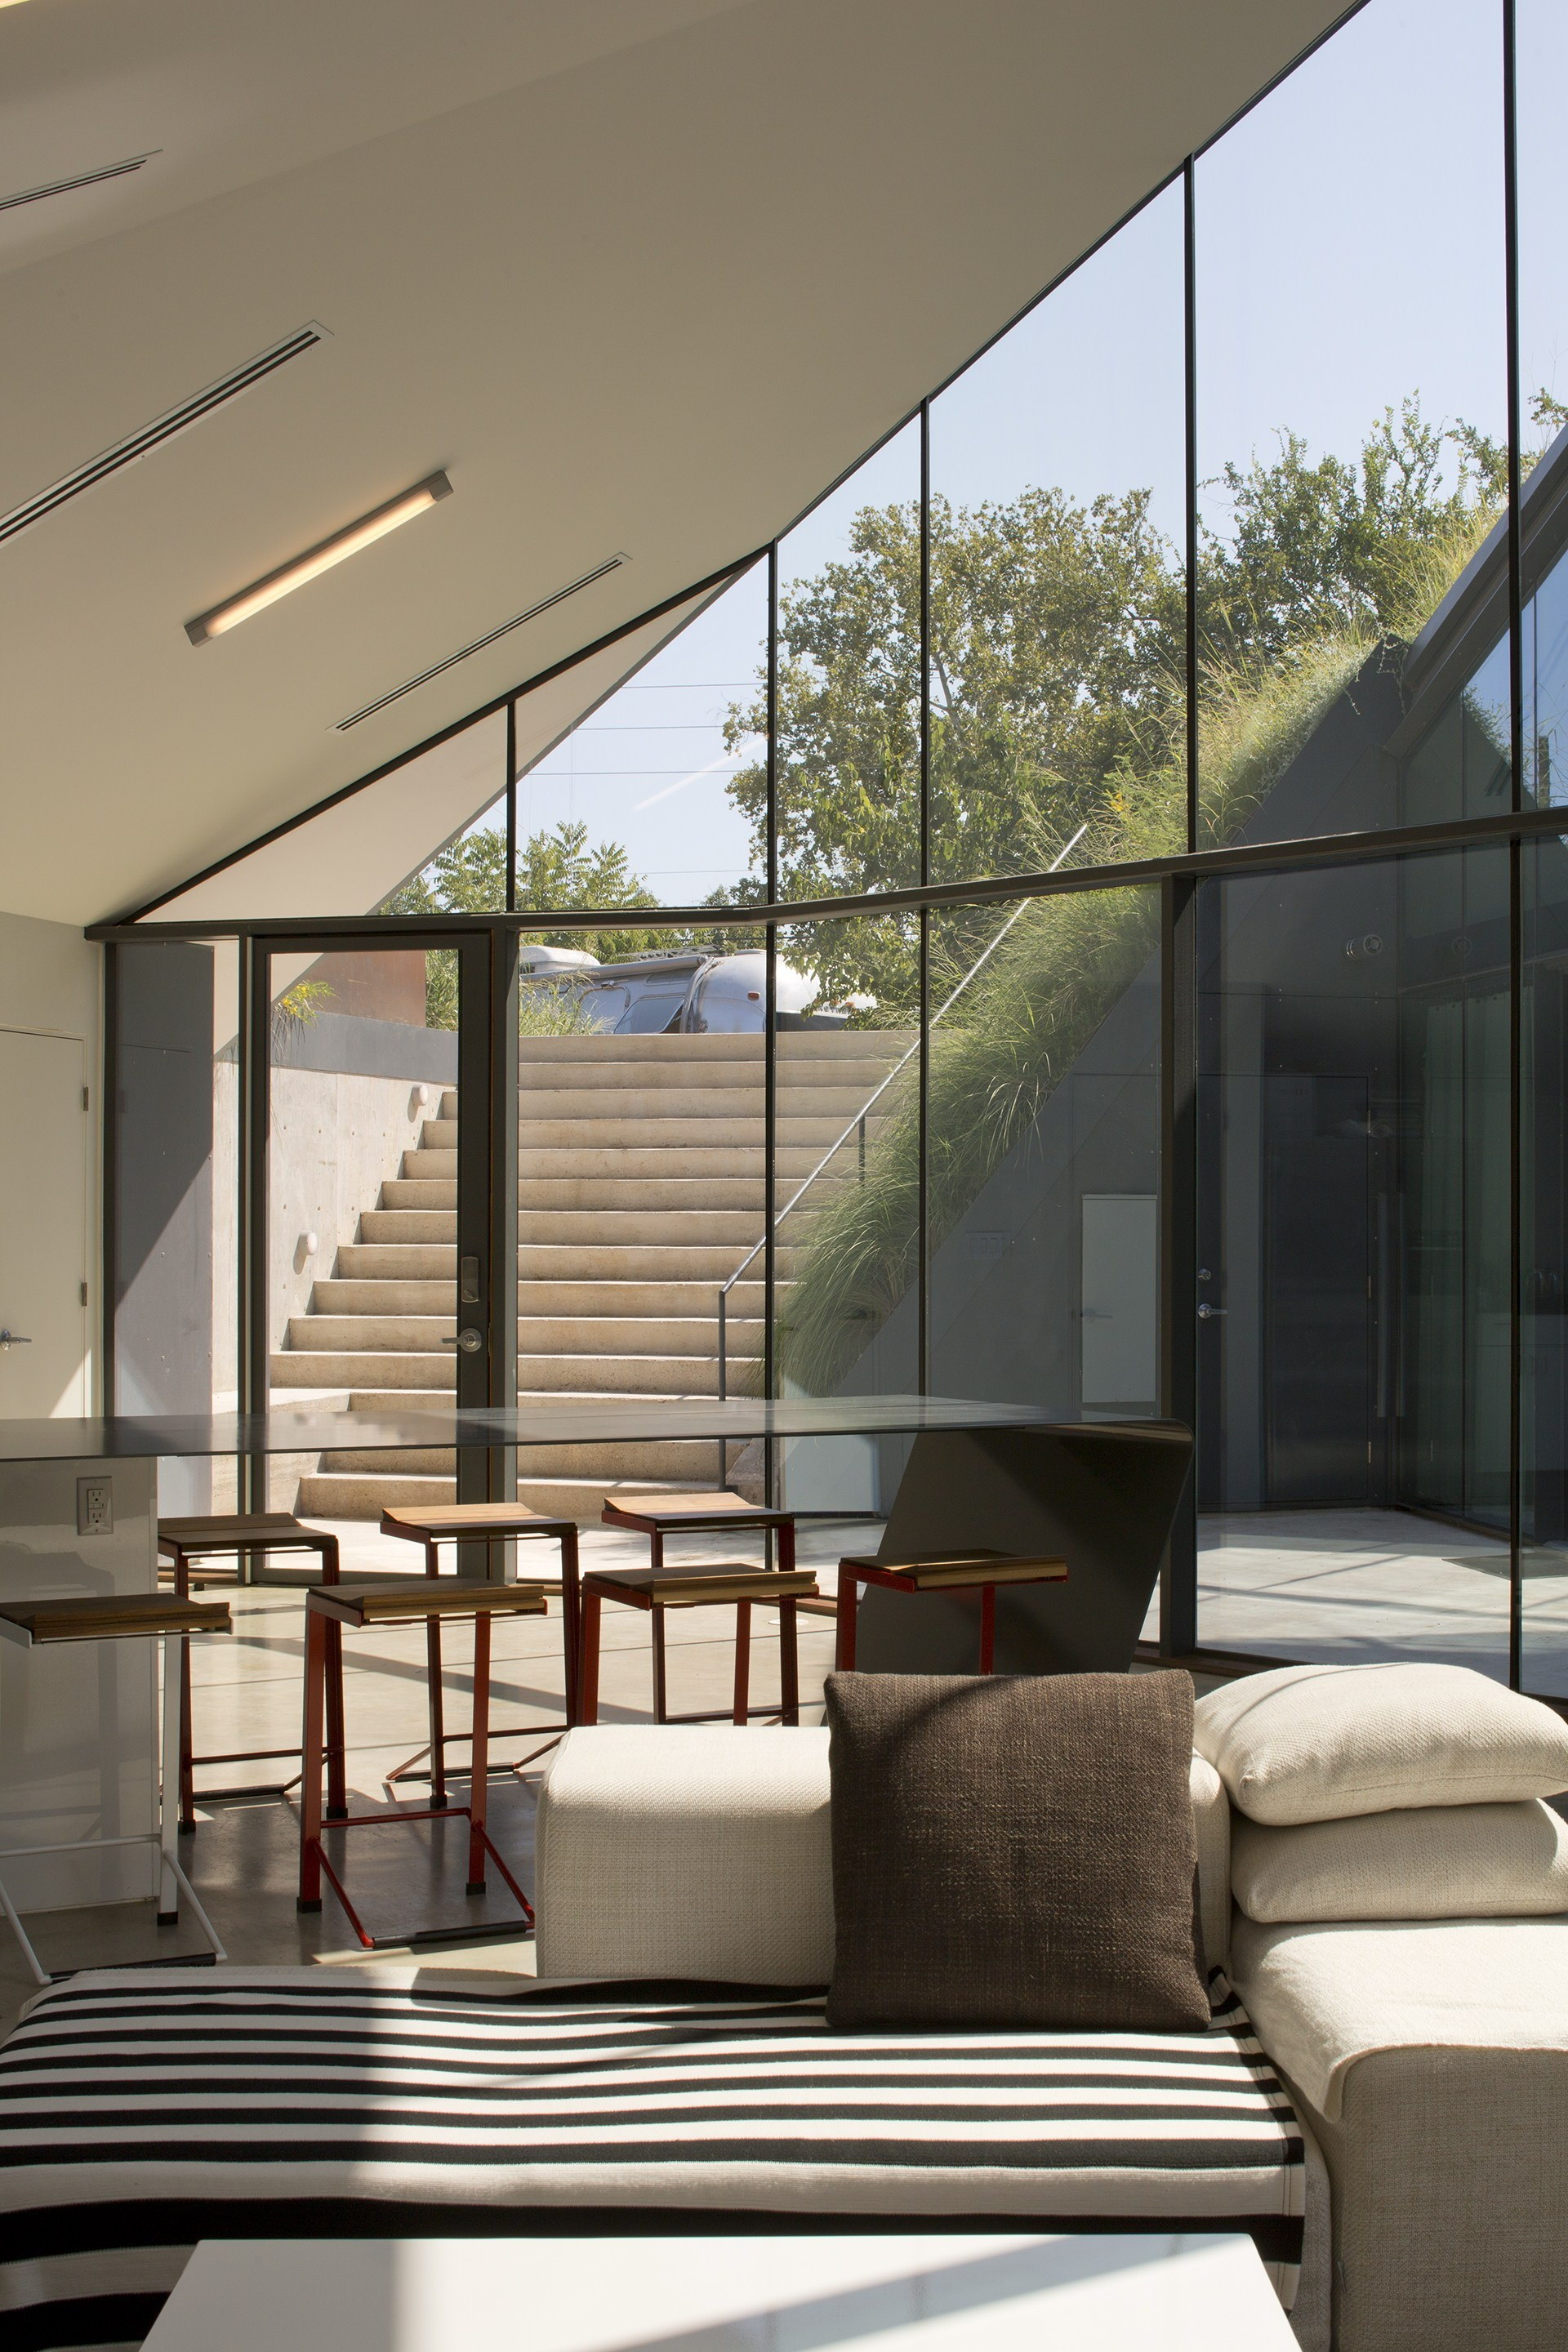 Edgeland House by Berry Chen Architects